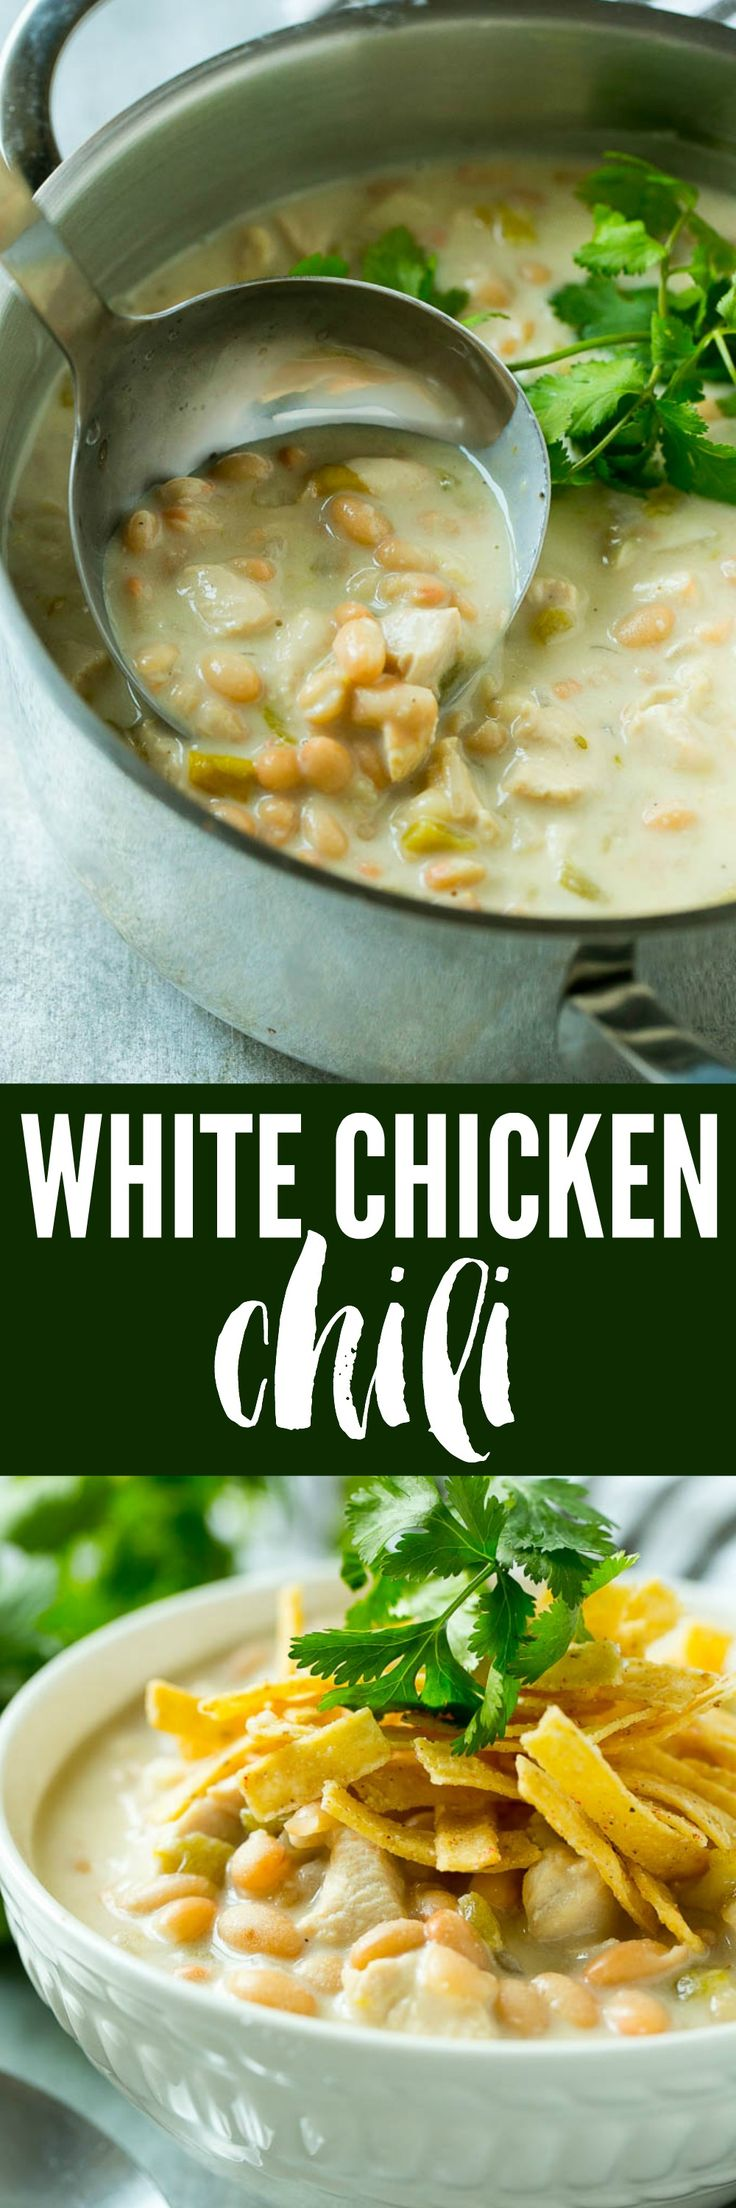 This easy white chicken chili is loaded with beans, chicken and green chiles, all in the most delicious creamy broth. A dinner option that's perfect for a cold day!